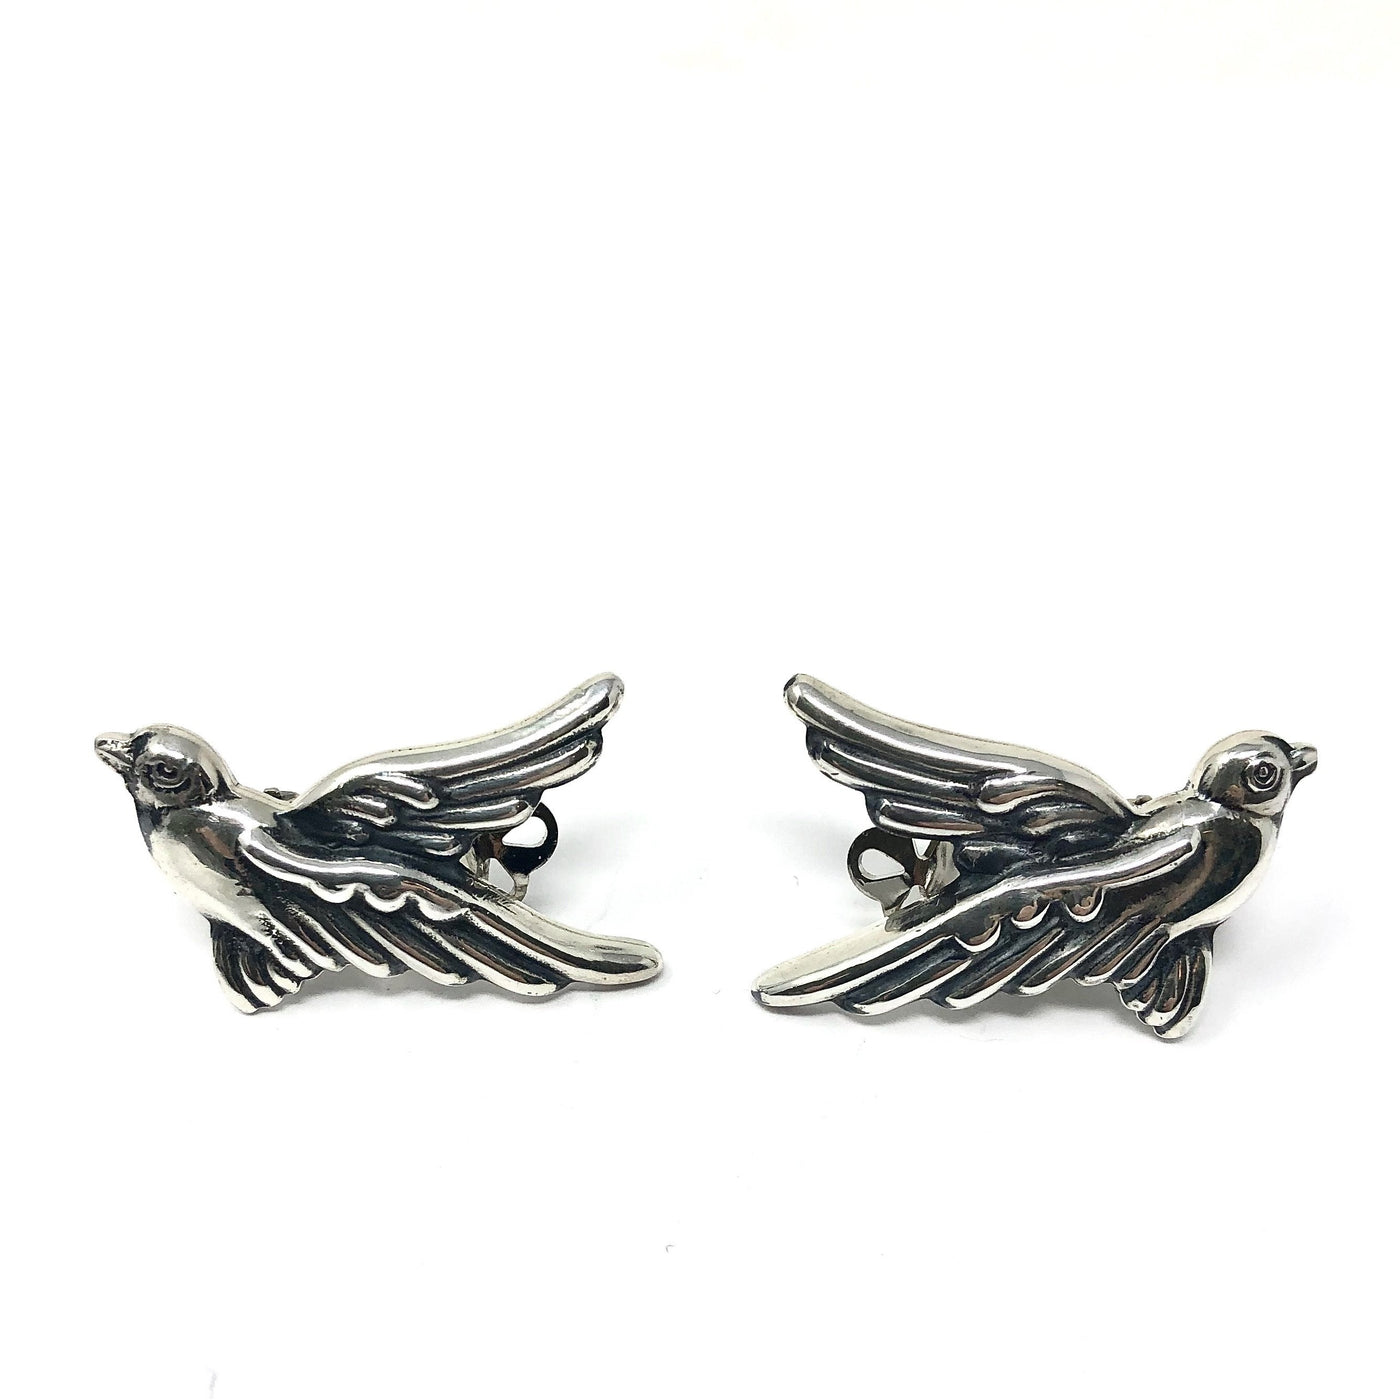 NY 12 DOVE CLIP EARRINGS